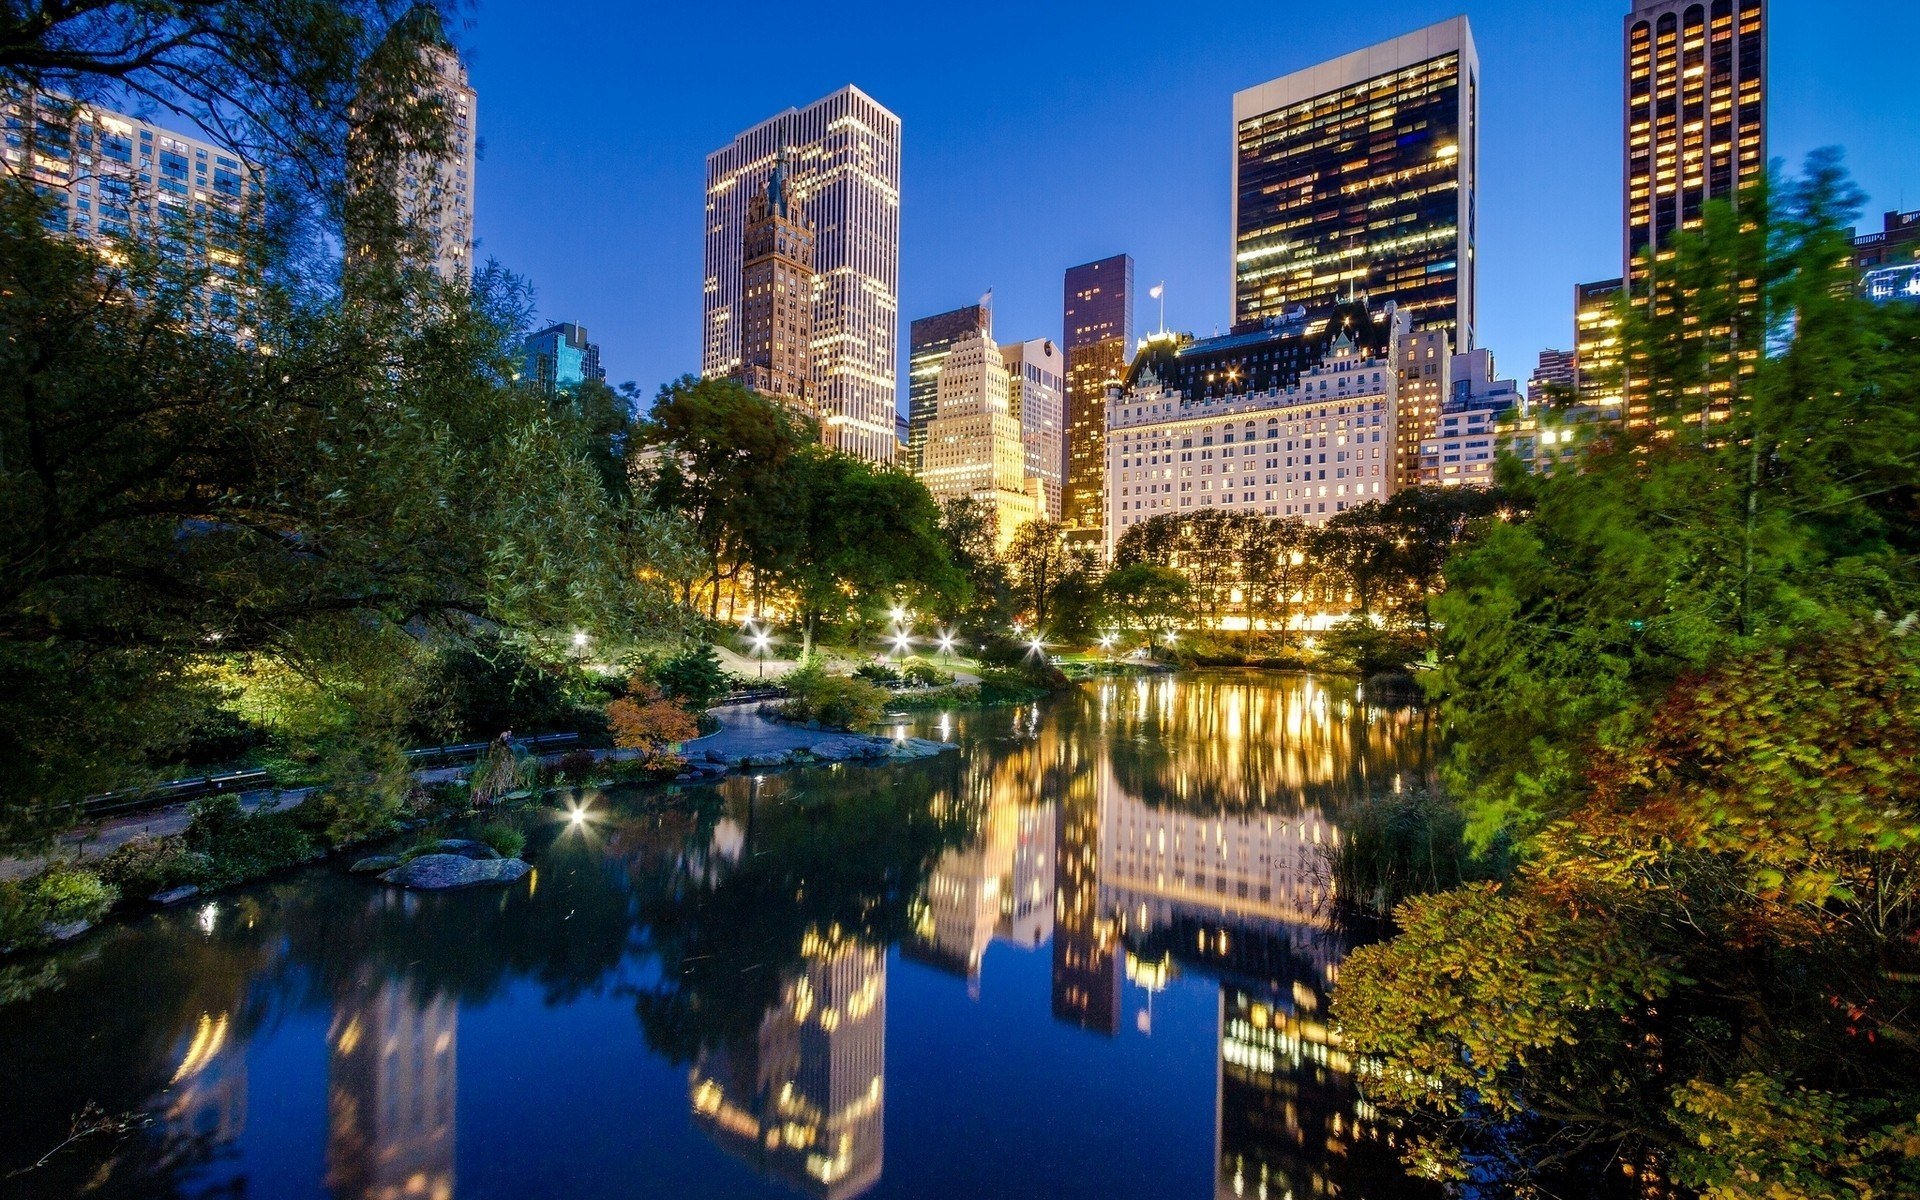 55central park new york wallpapers Collection